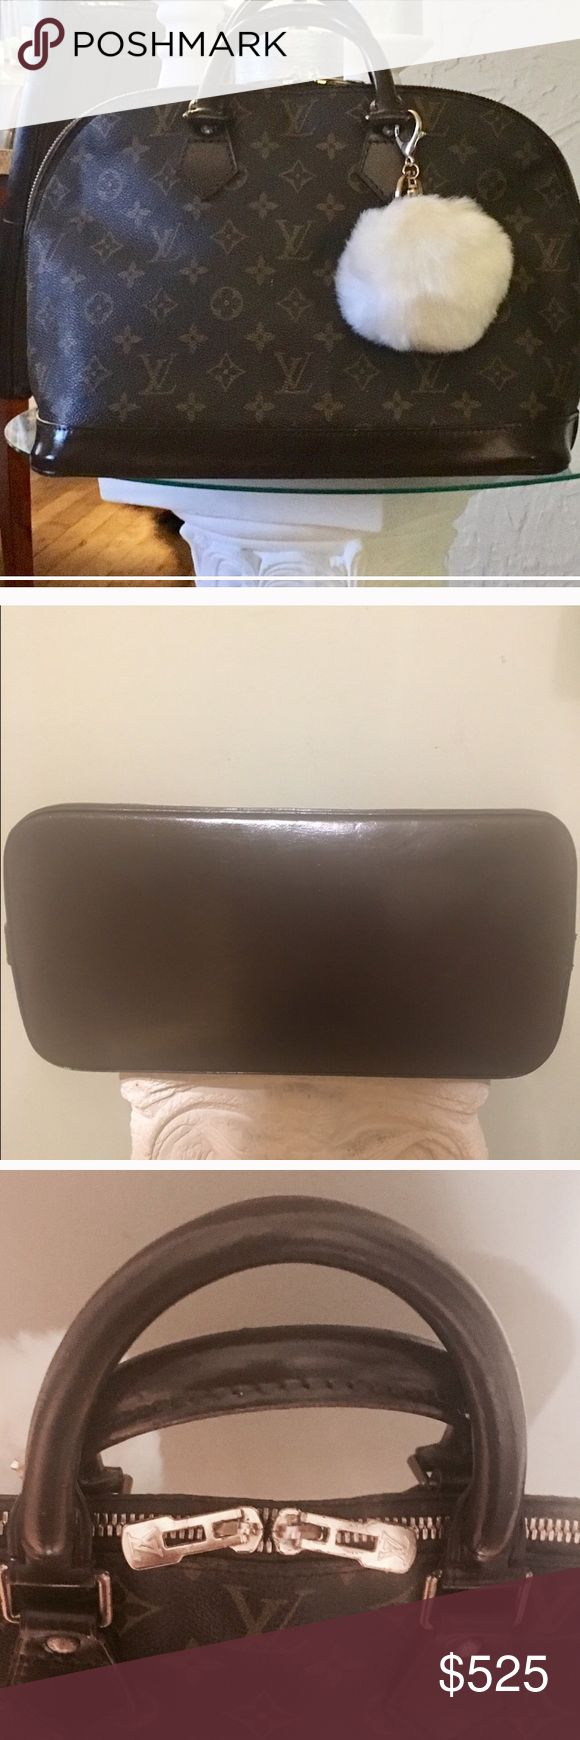 💯% Authentic Louis Vuitton Alma handbag Authentic Louis Vuitton monogram Alma handbag. Looks like new! Professionally dyed and sealed for protection a gorgeous chocolate color. Item information Brand nameLouis Vuitton Product nameAlma Size (aprx.)W 11.81 x H 9.06 x D 6.3 inch /  Handle/s drop 3.94 inch  MaterialMonogram PVC / leather ColorBrown Made inFrance AccessoriesNothing Comes with pompom keychain 😉 Louis Vuitton Bags